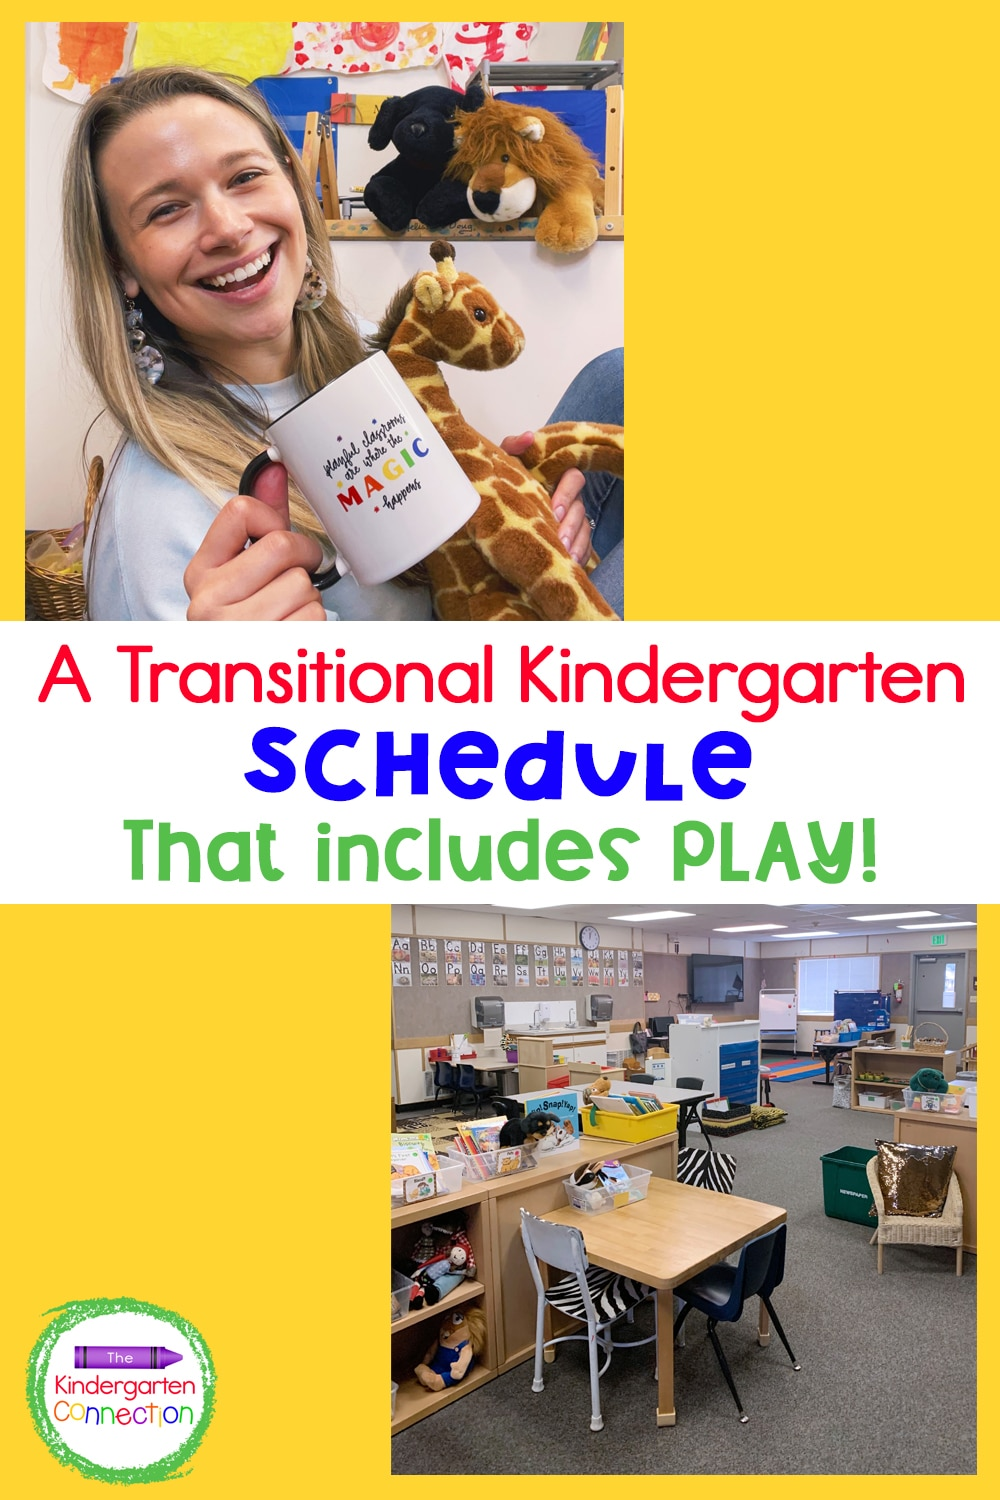 """Check out my daily Transitional Kindergarten schedule to take a peek at a """"normal"""" day in a TK classroom that includes PLAY!"""